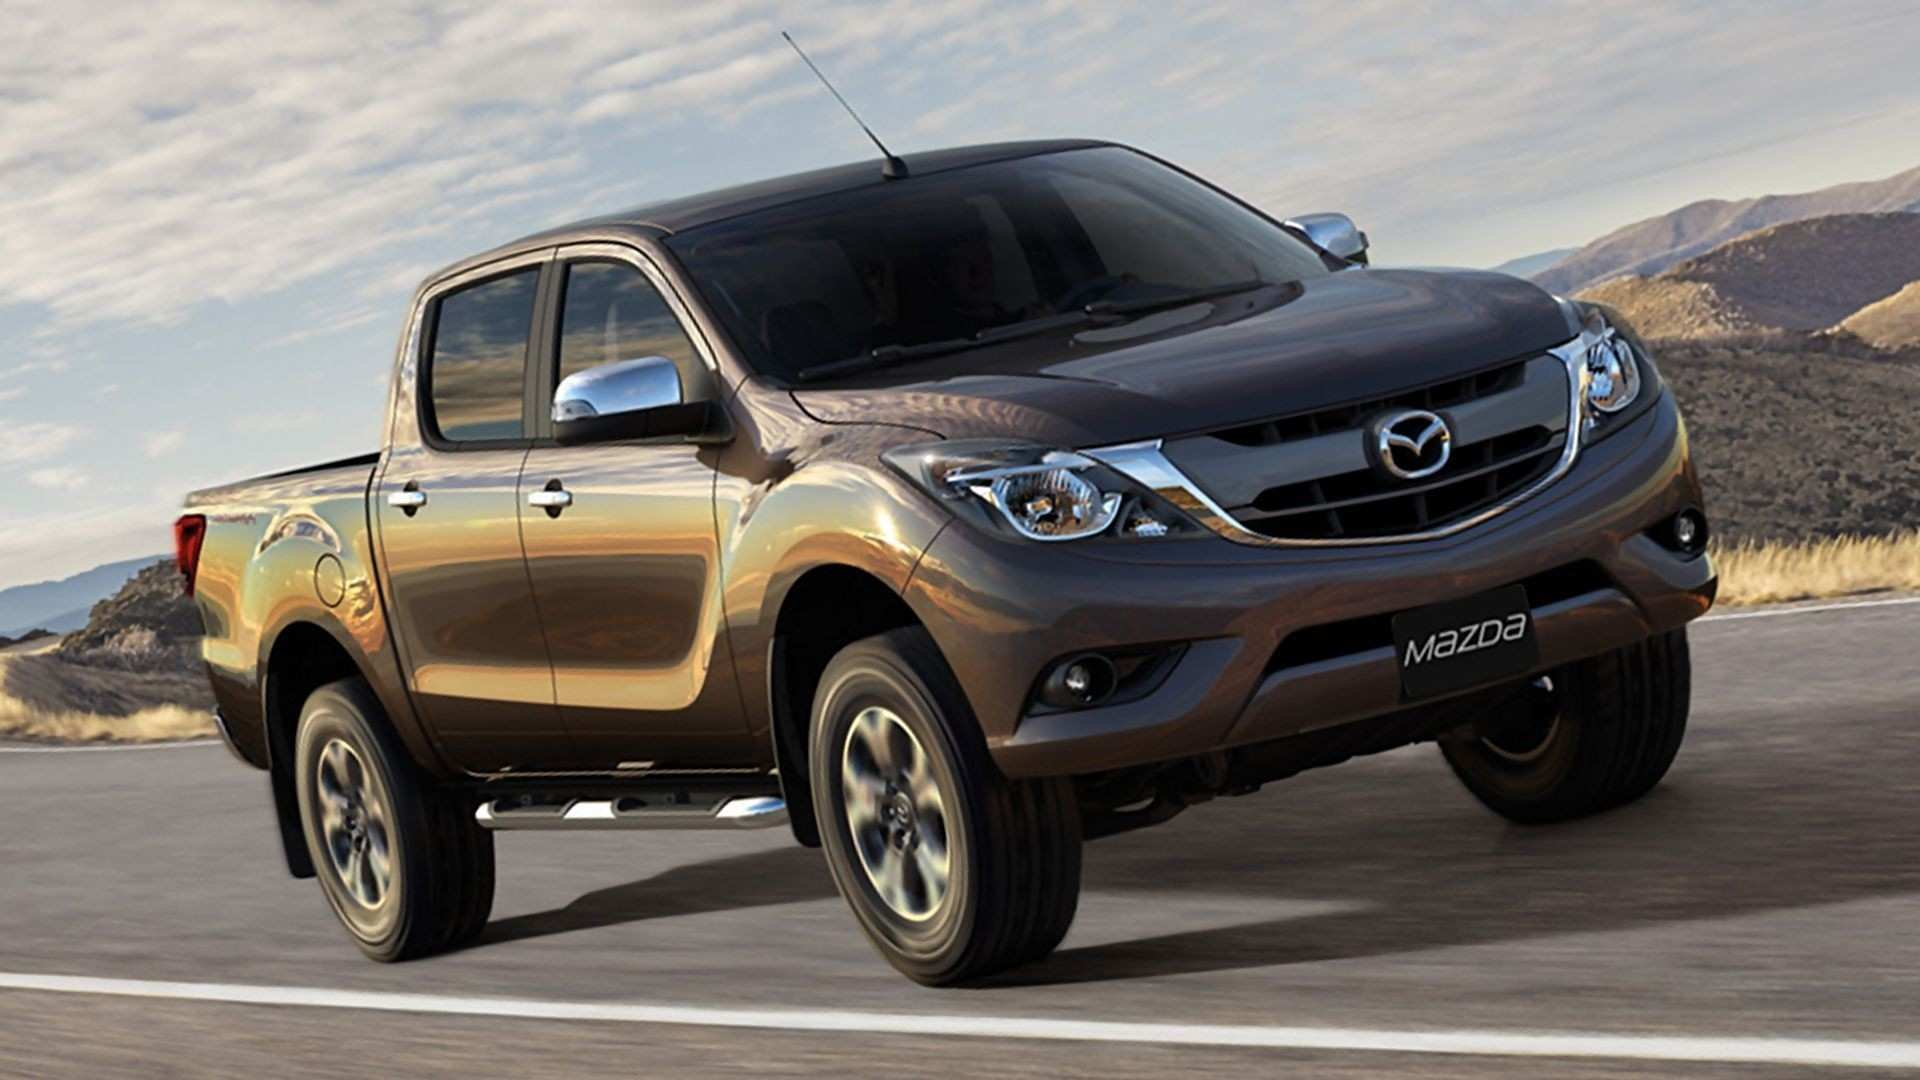 44 Best Review Best 2019 Mazda Truck Usa First Drive Exterior by Best 2019 Mazda Truck Usa First Drive